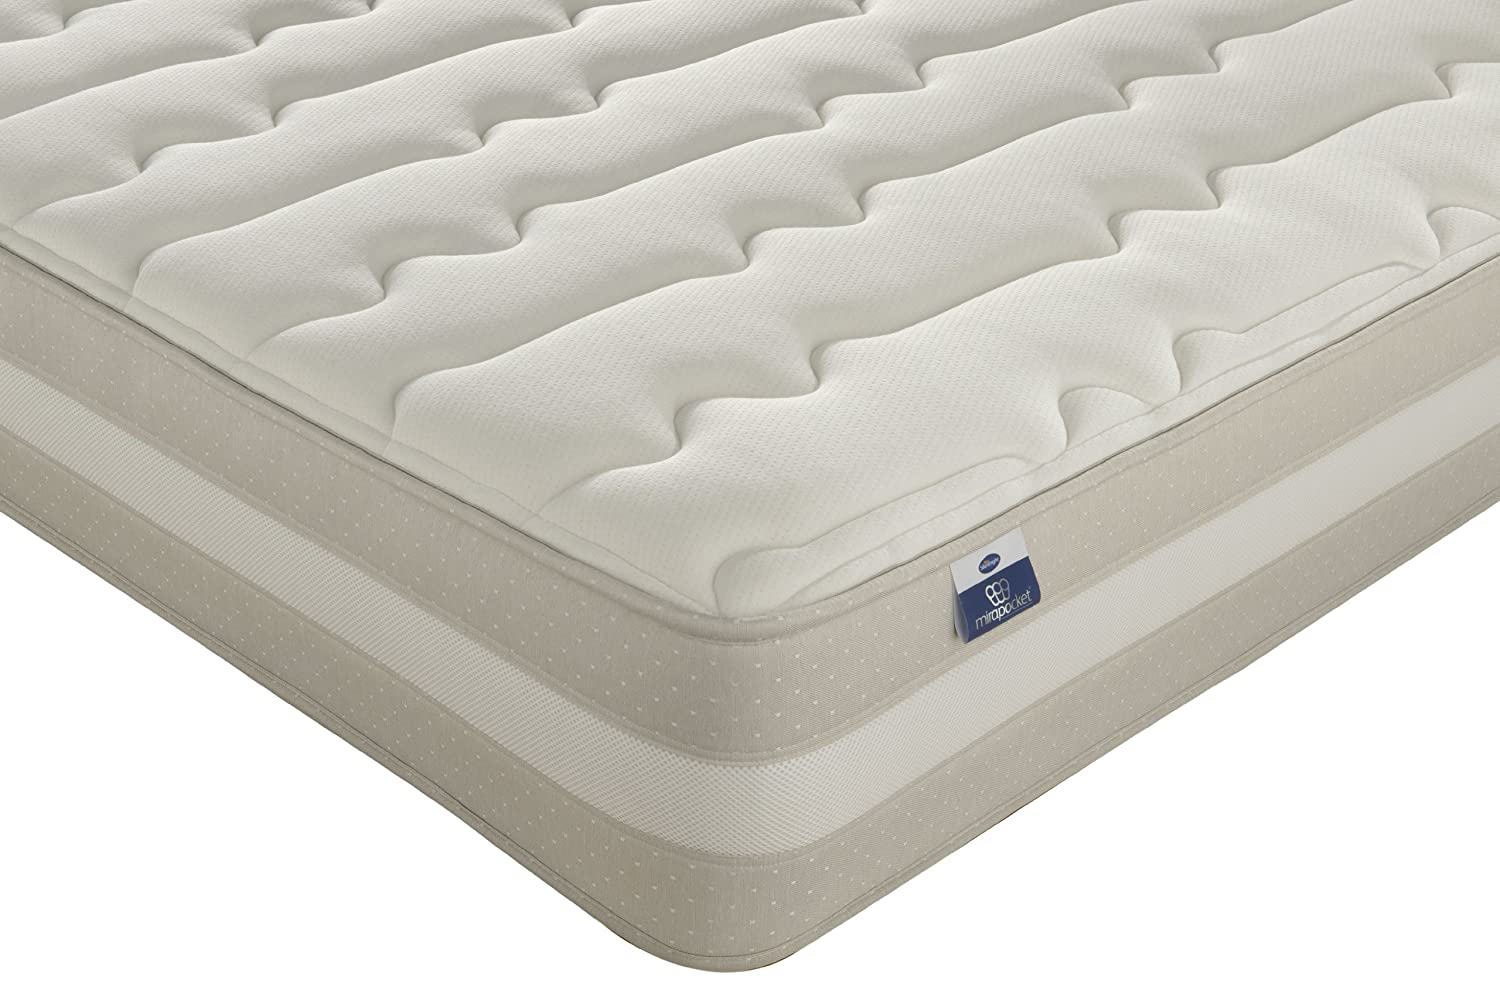 Silentnight London Memory 2100 Mirapocket Mattress Review